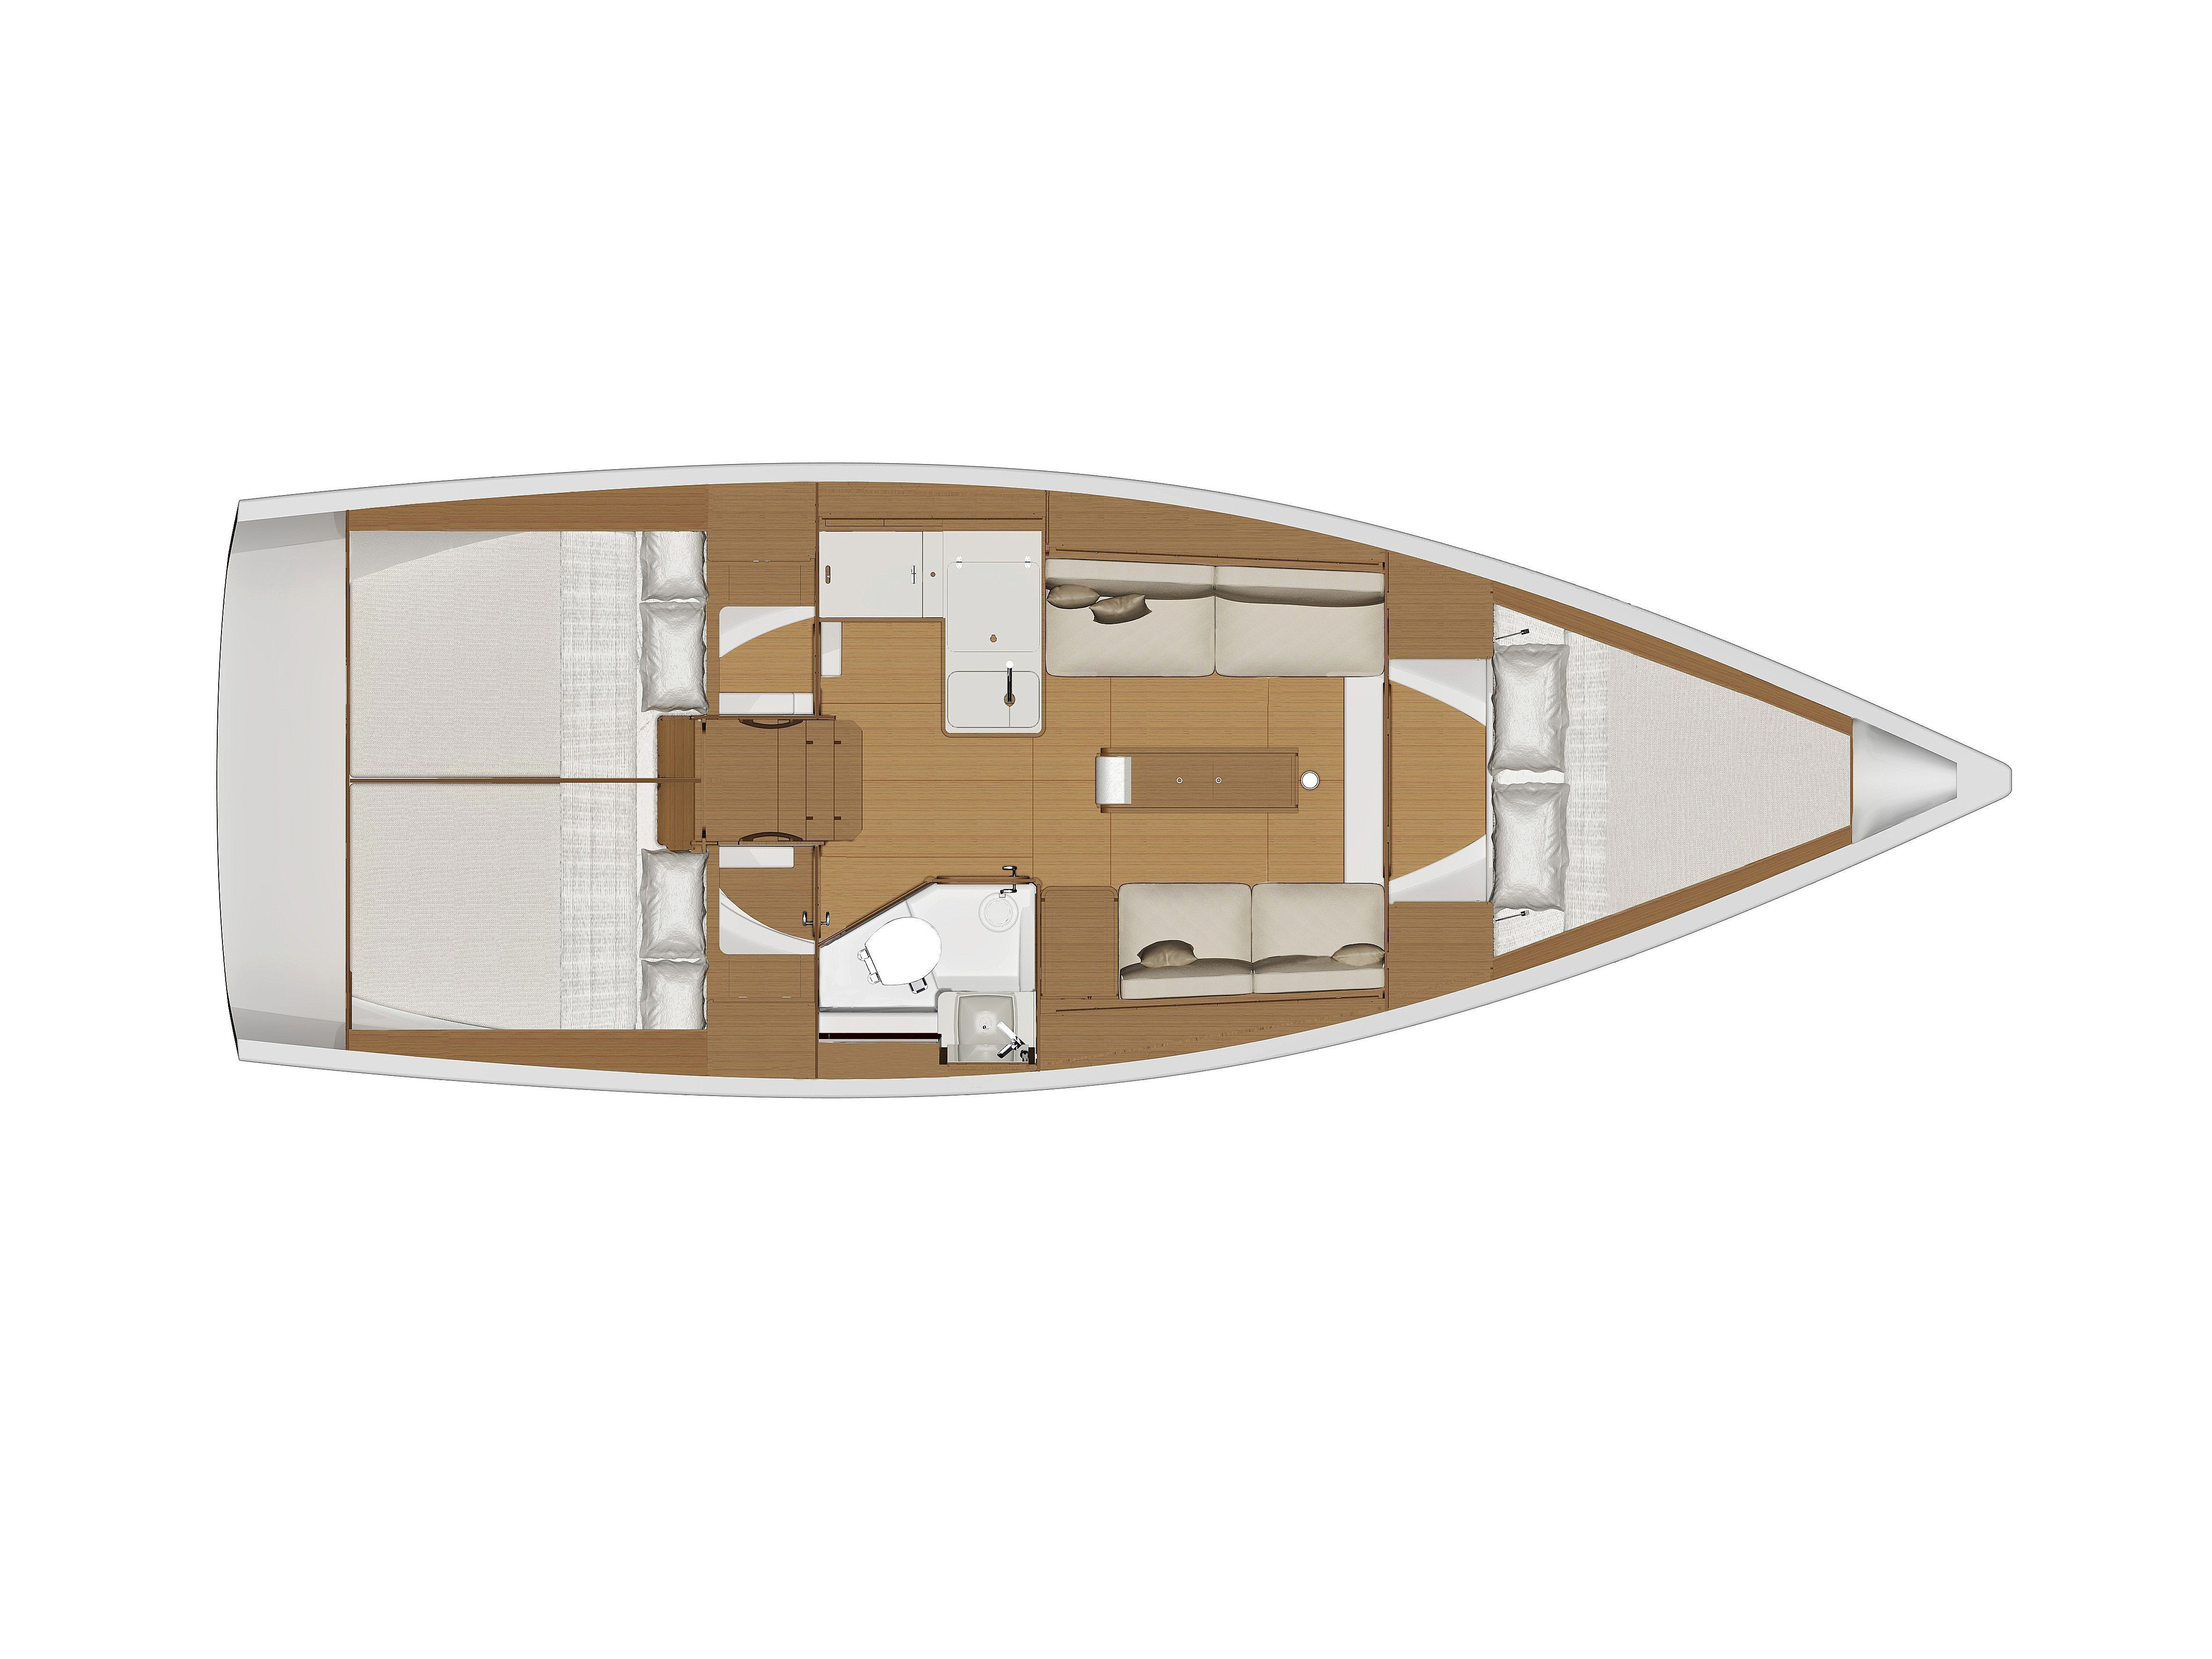 Dufour 360 GL '18 (Lily) Plan image - 2